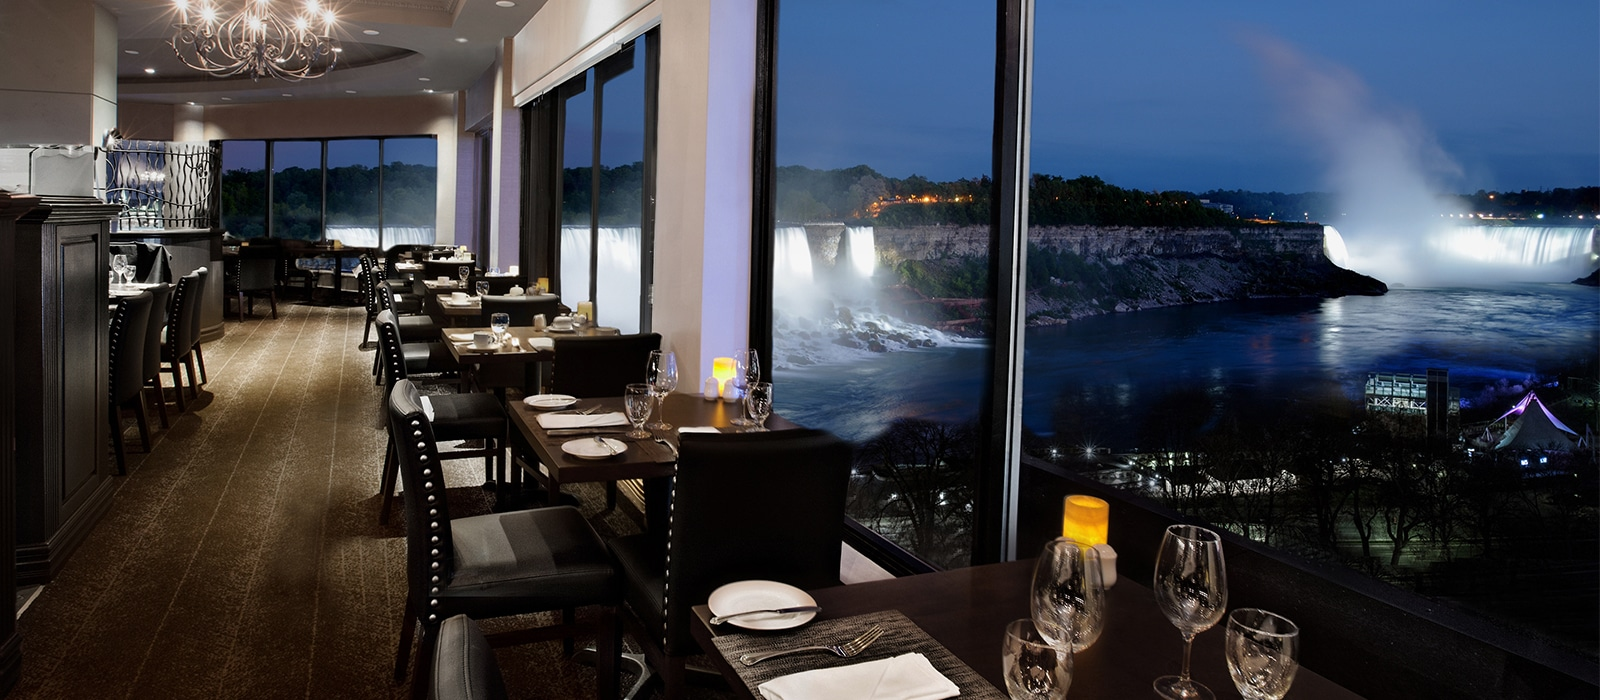 Prime Steakhouse Niagara Falls